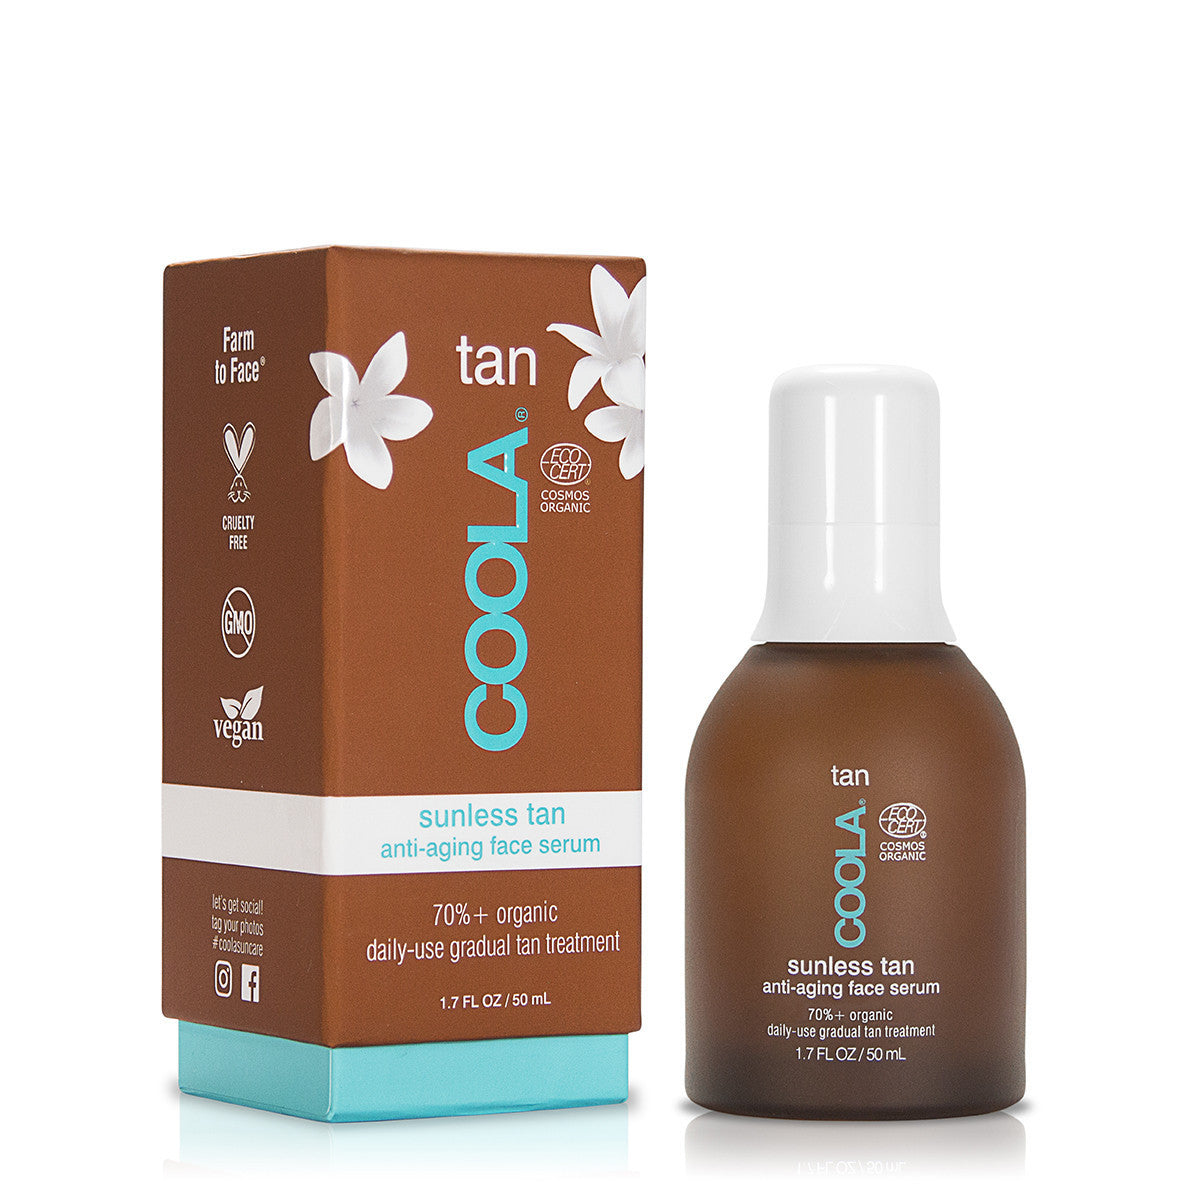 coola | organic sunless tan - anti aging face serum[product_type ]coola suncare - Kiss and Makeup